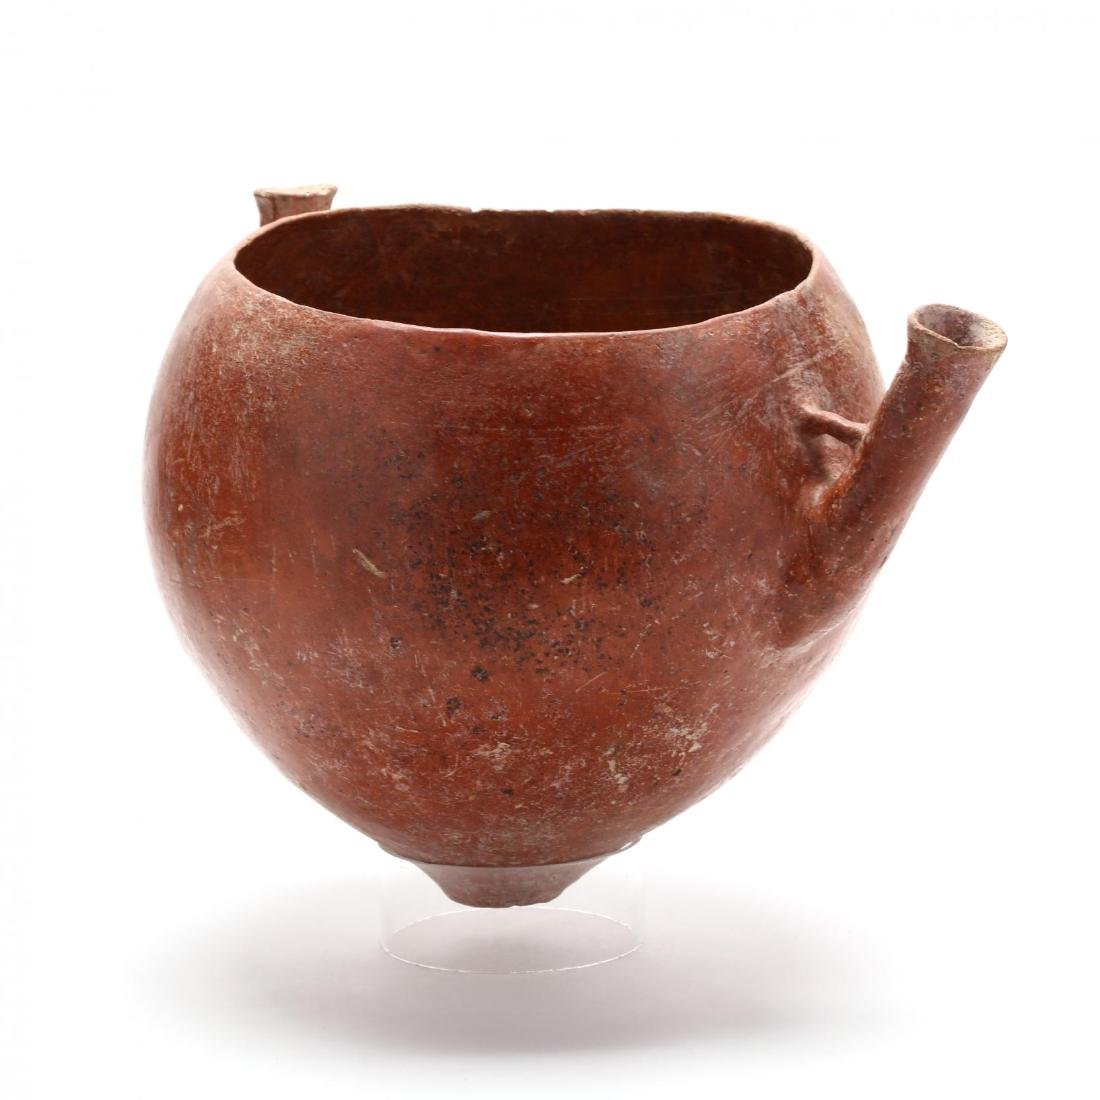 Cypriot Bronze Age Large Polished Red Ware Bowl With